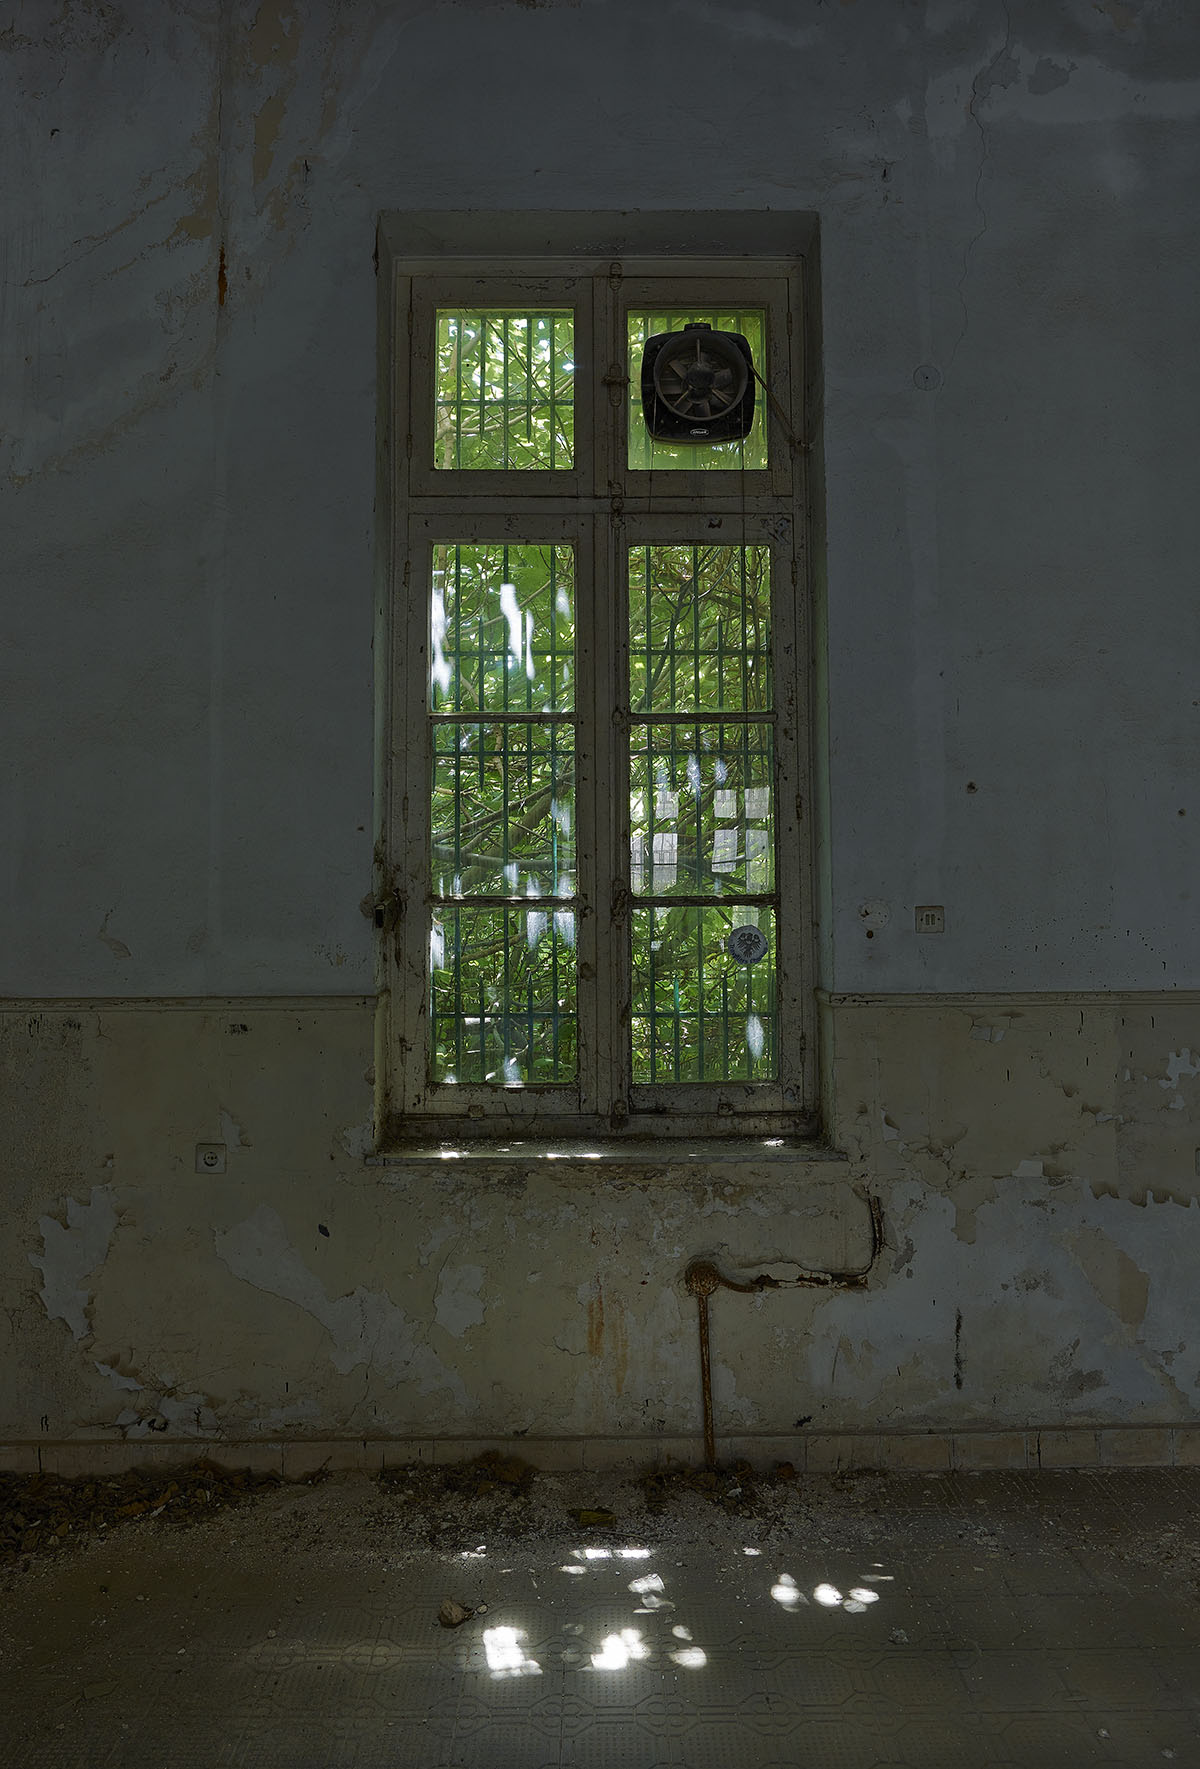 Fokion zissiadis interiors in decay for 20 40 window